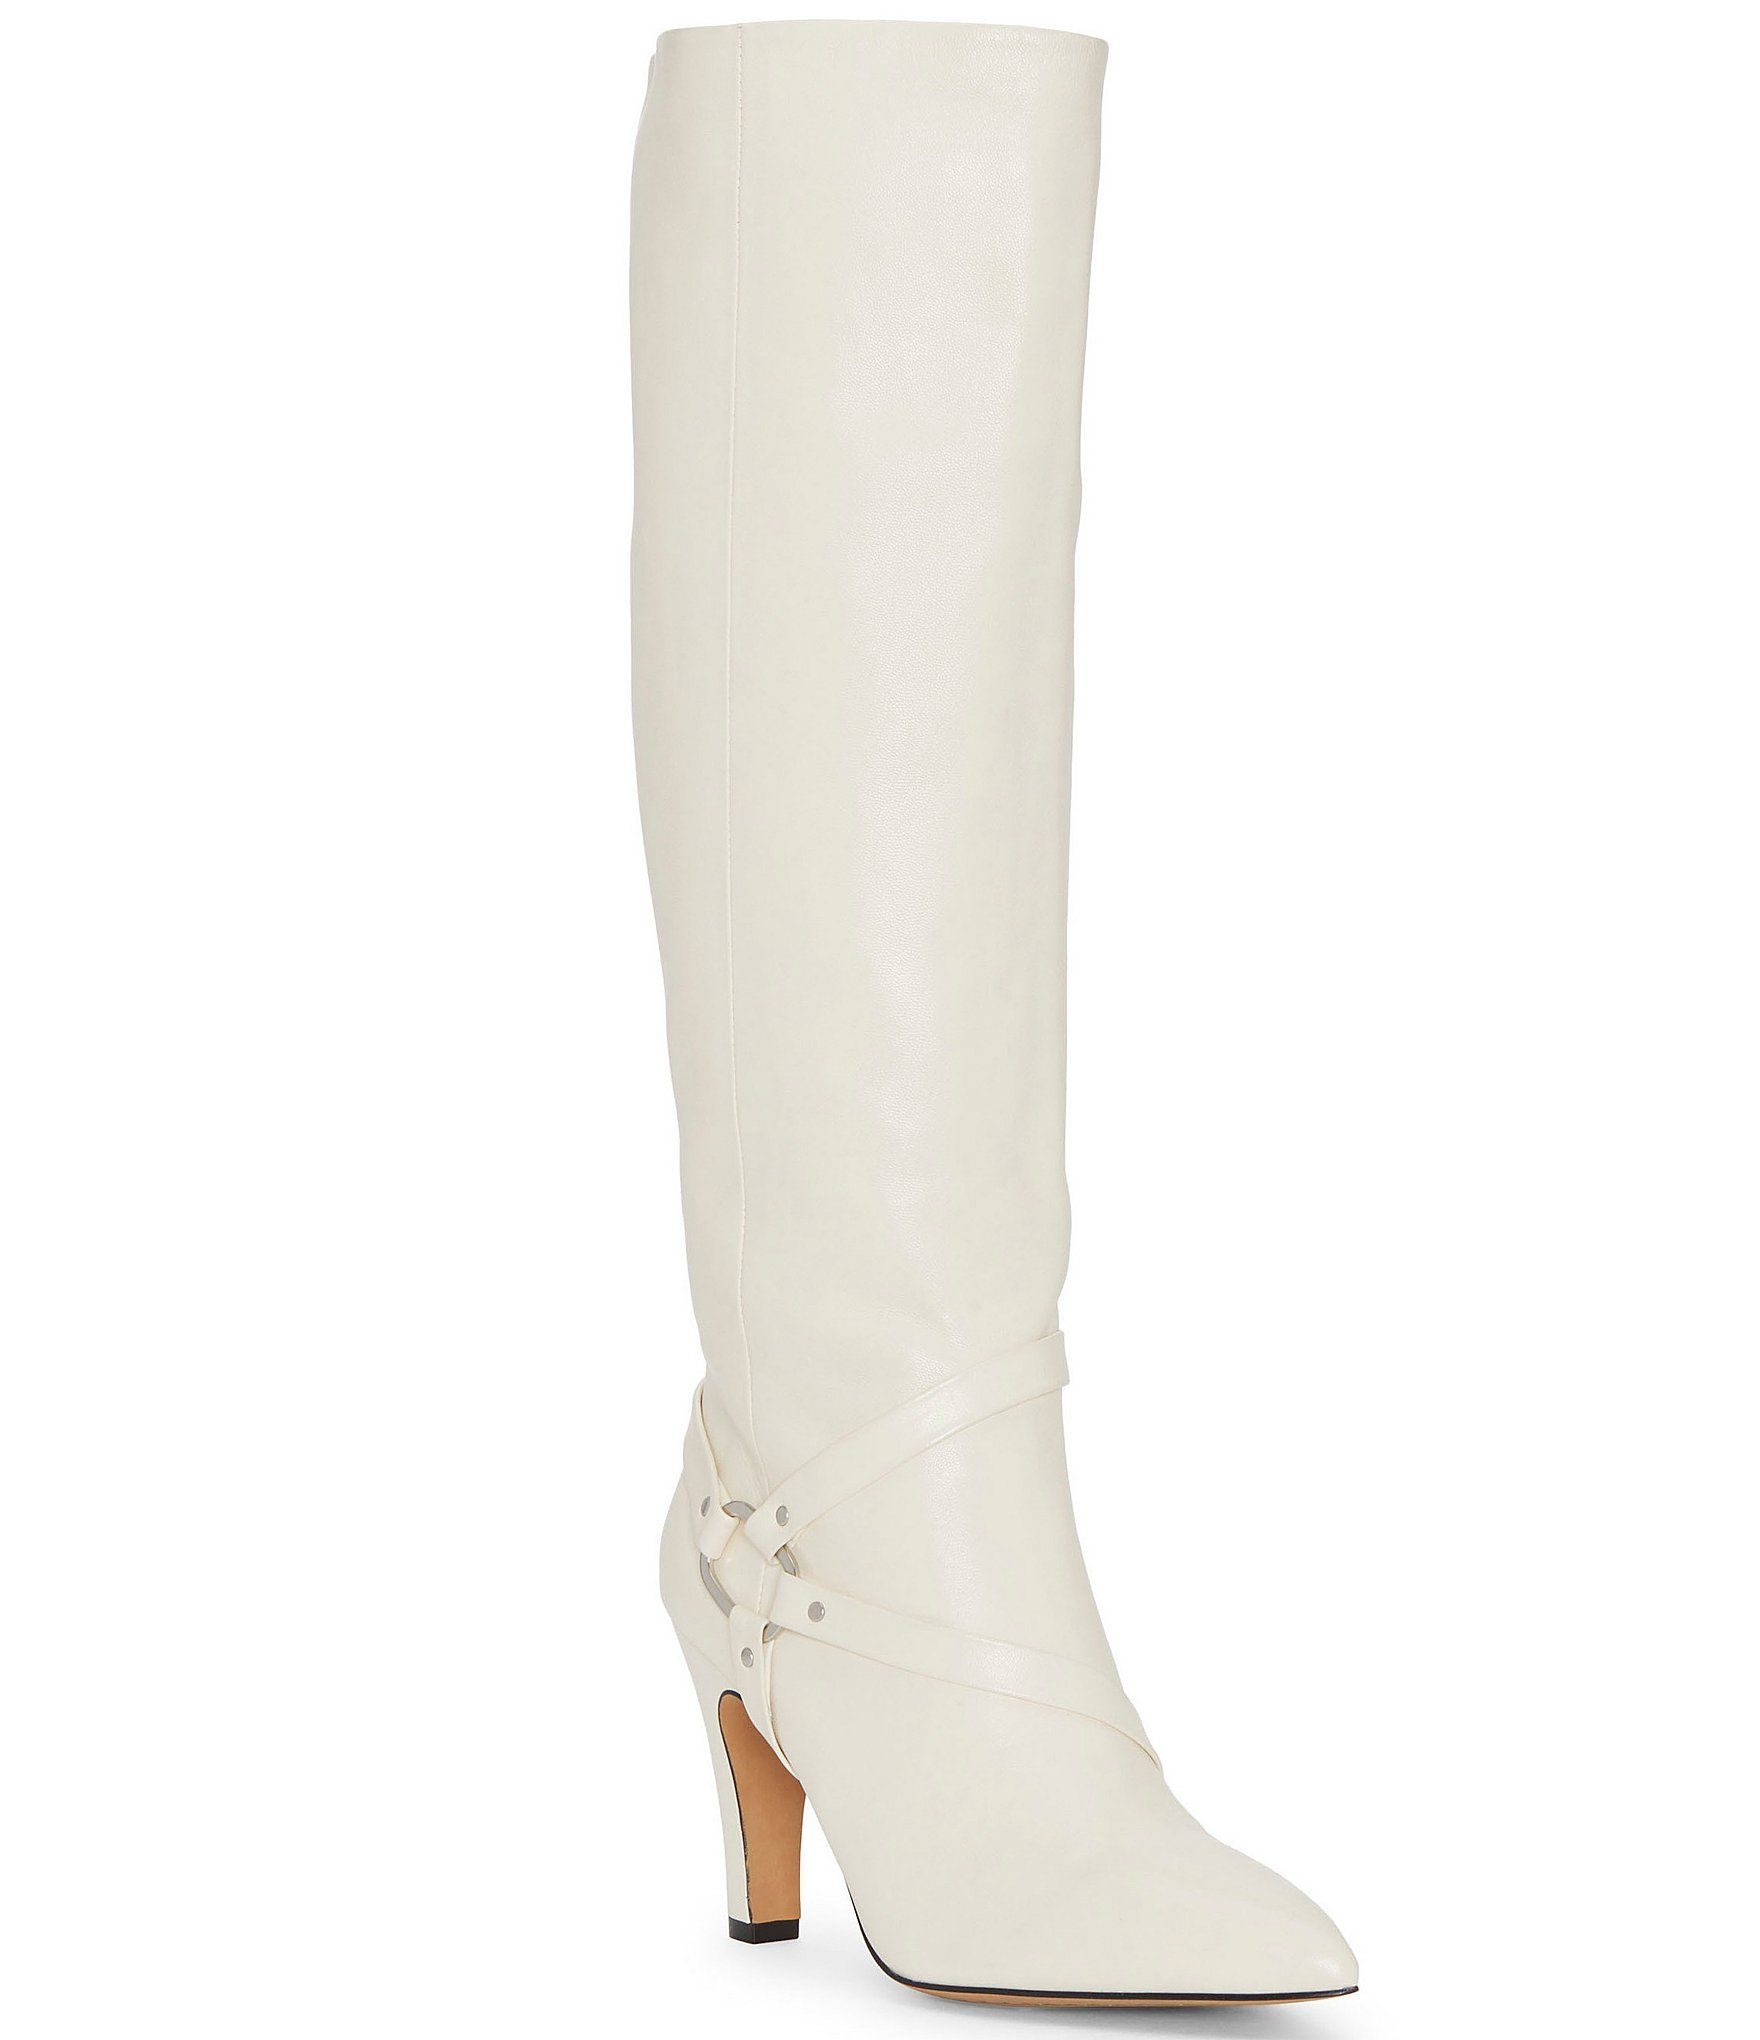 Vince Camuto Charmina Leather Stovepipe Dress Harness Boots – Off White 8.5M